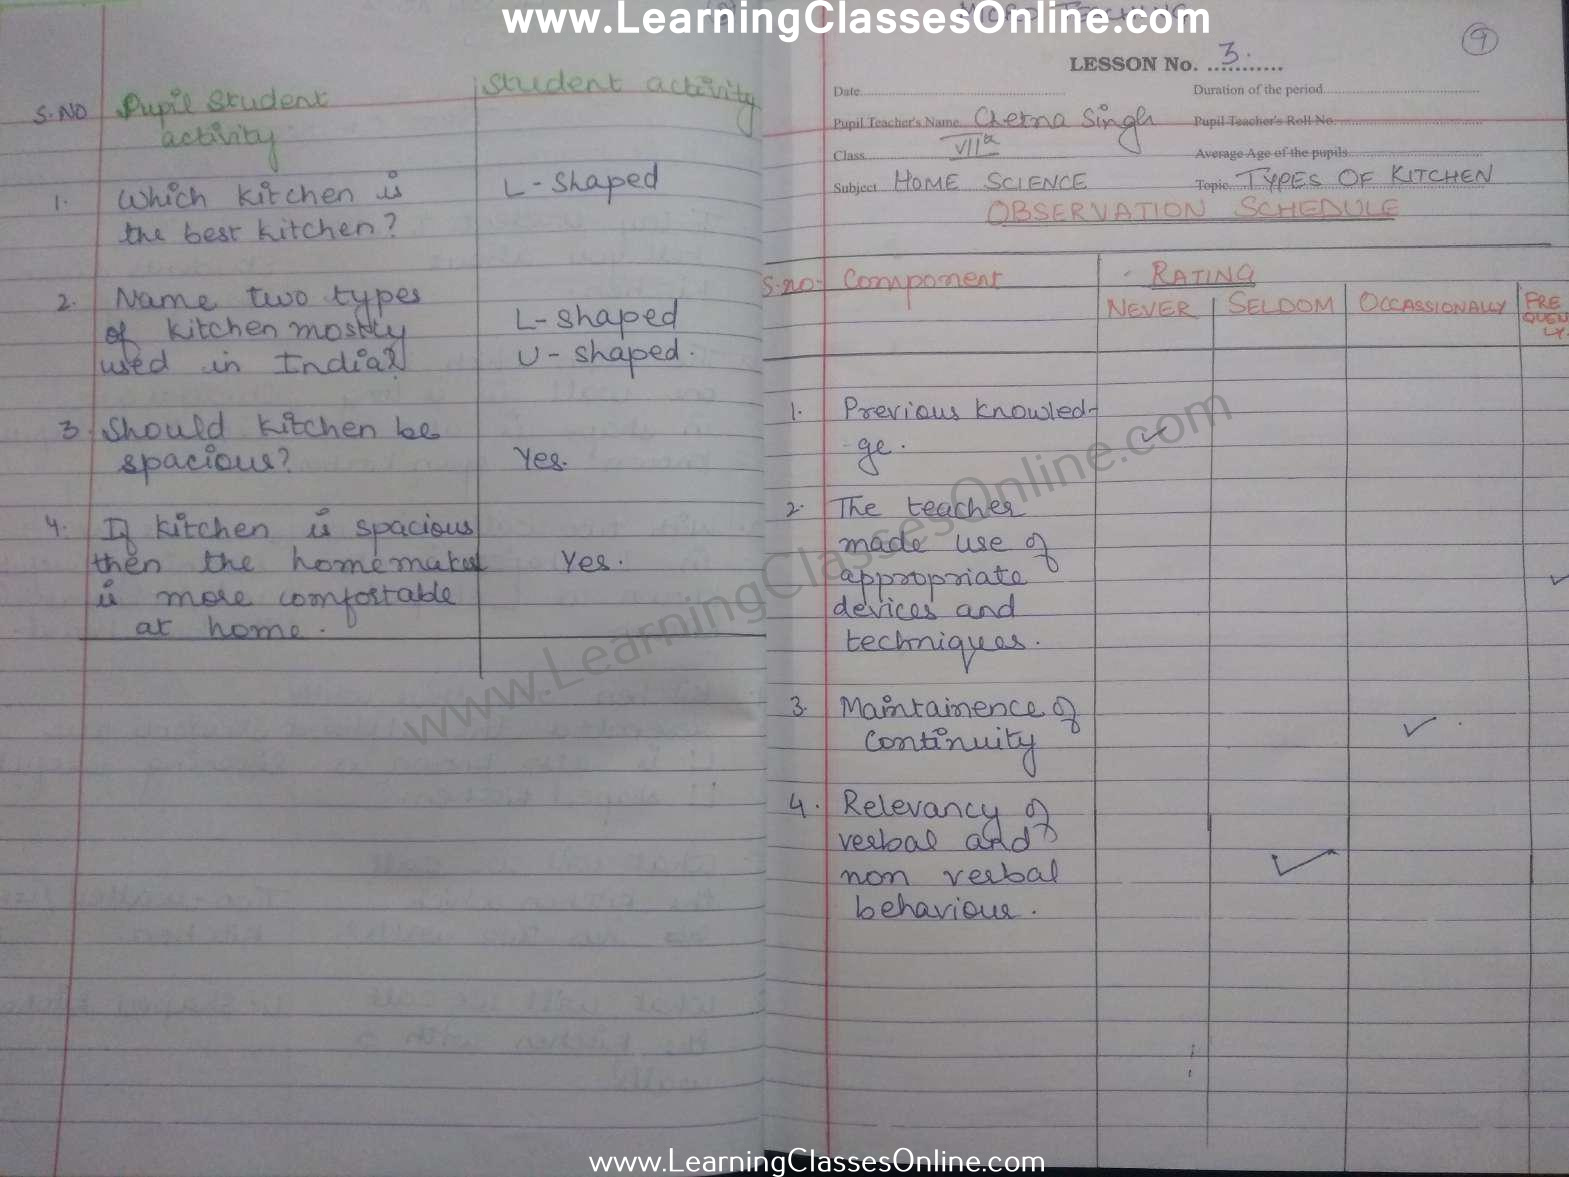 class 7th home science microteaching lesson plan